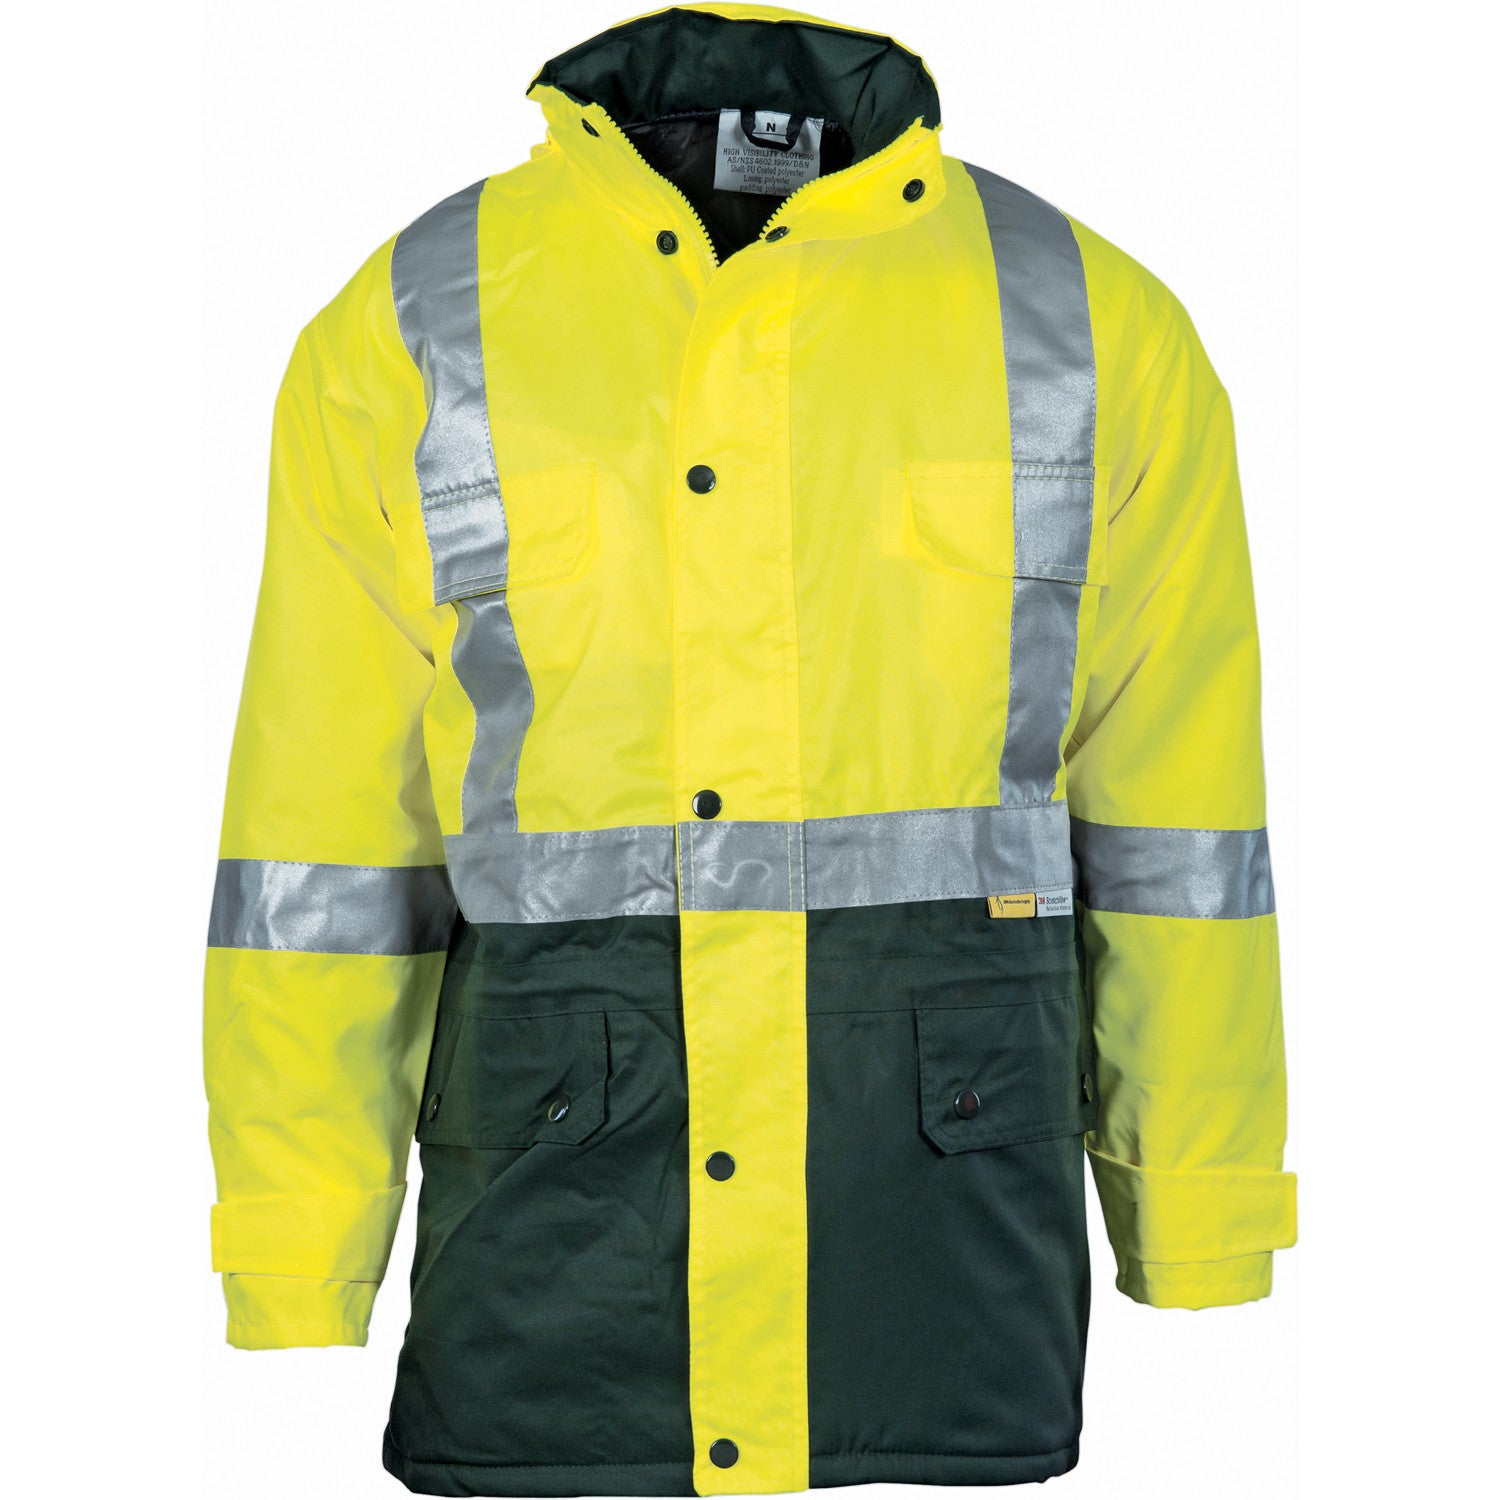 DNC HiVis Two Tone Quilted Jacket with 3M R/Tape (3863)